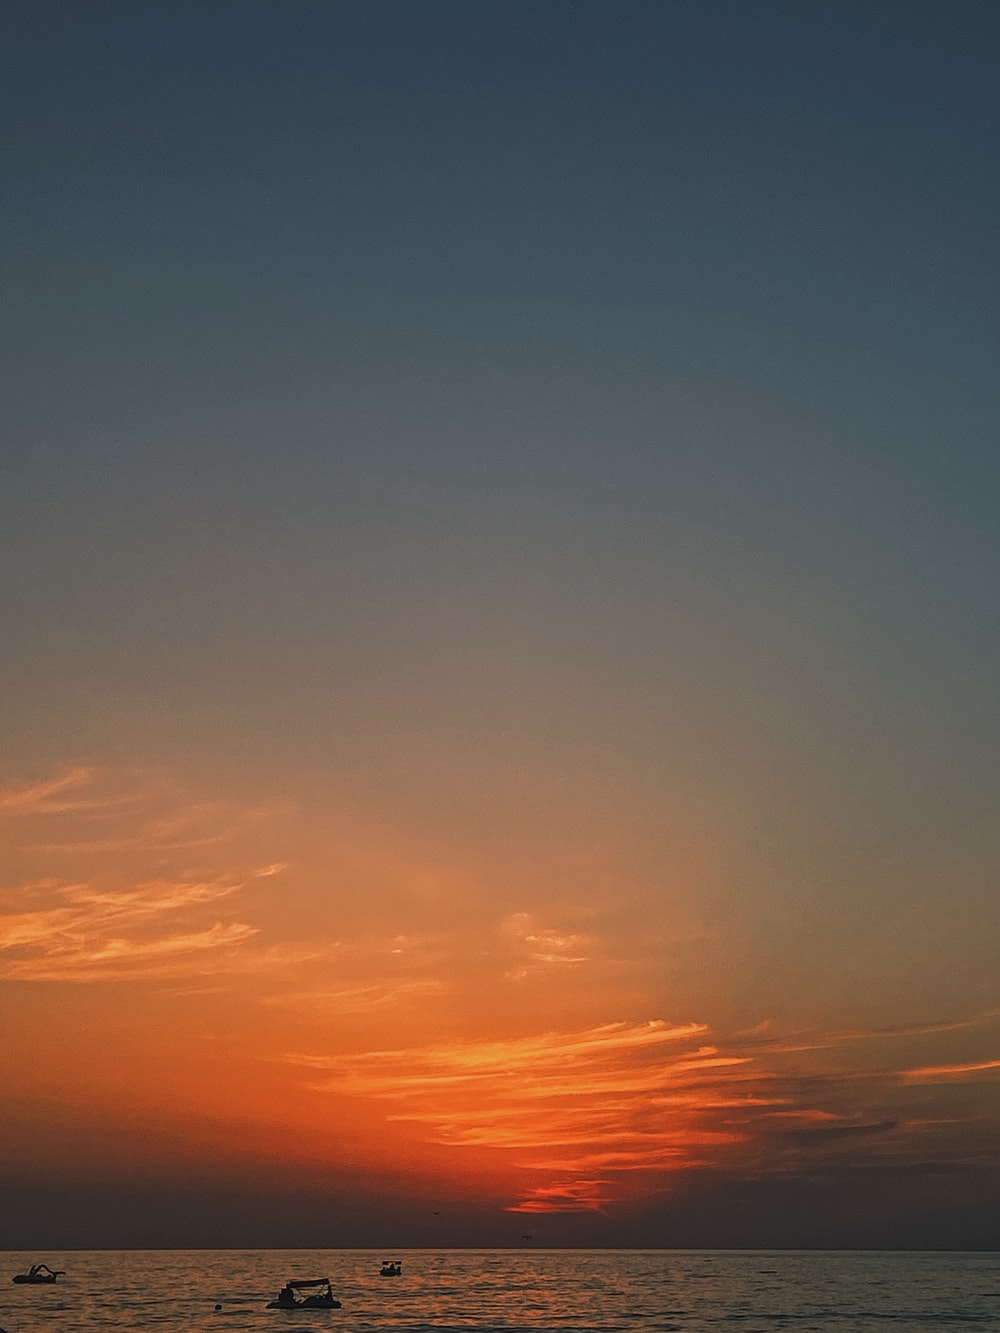 orange and blue sky during sunset